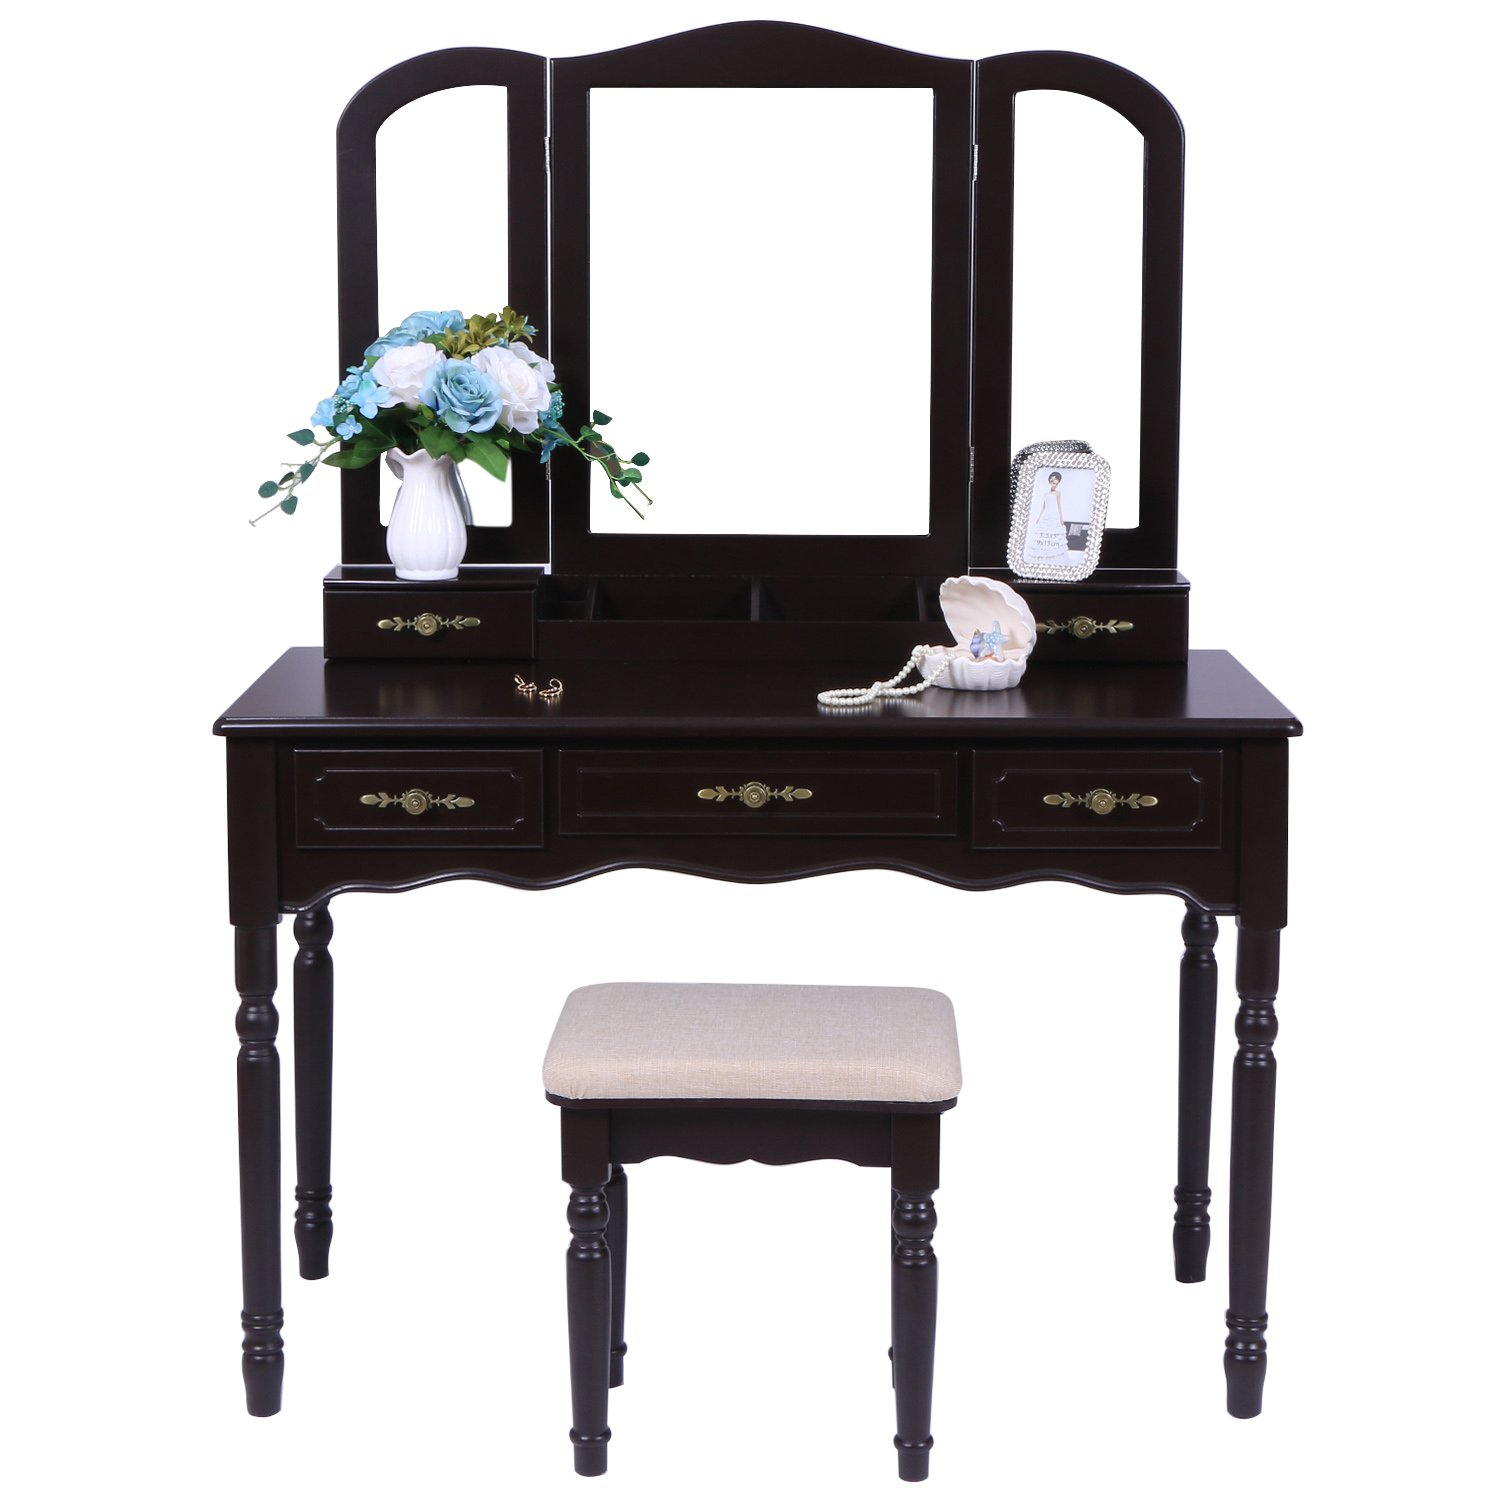 BEWISHOME Vanity Set with Large Tri-folding Mirror & Cushioned Stool Vanity Desk Makeup Table 5 Drawers 2 Dividers Desk Organizer Brown FST03Z